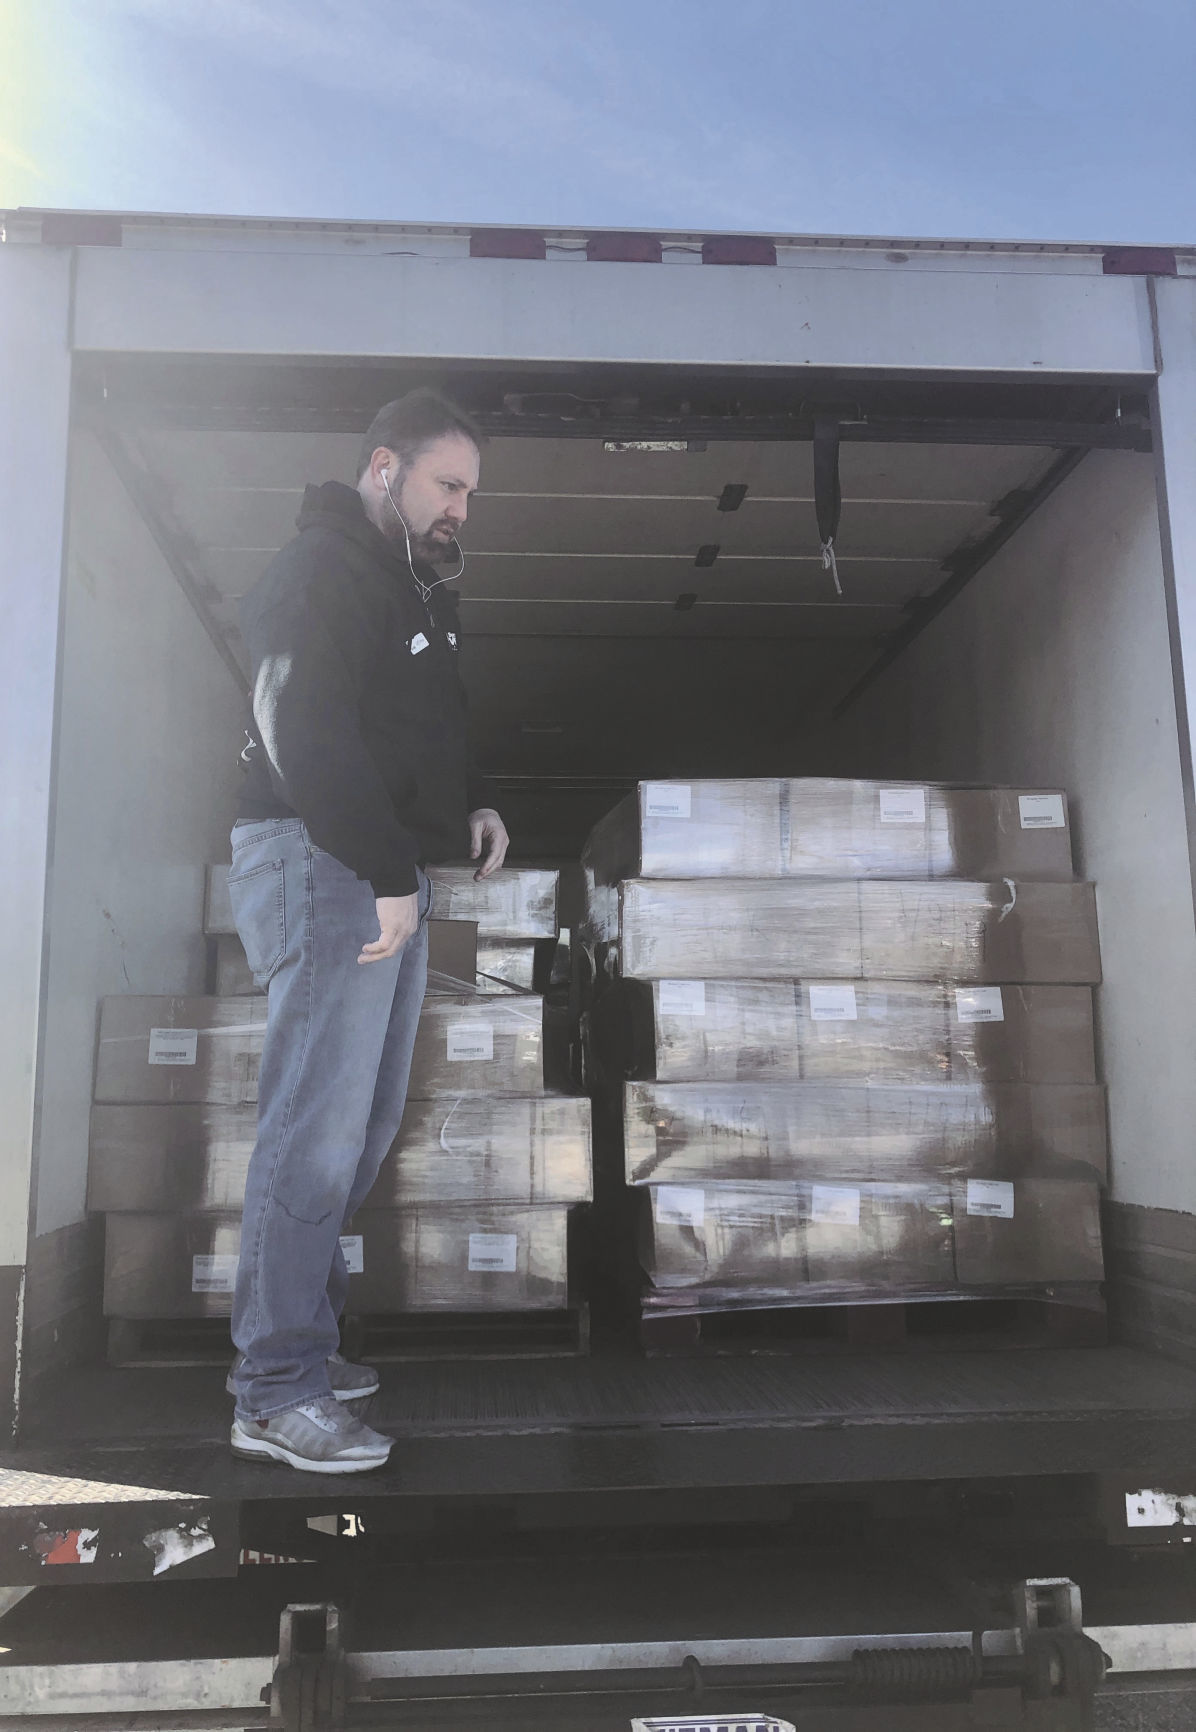 Second Harvest delivers food to TSA employees